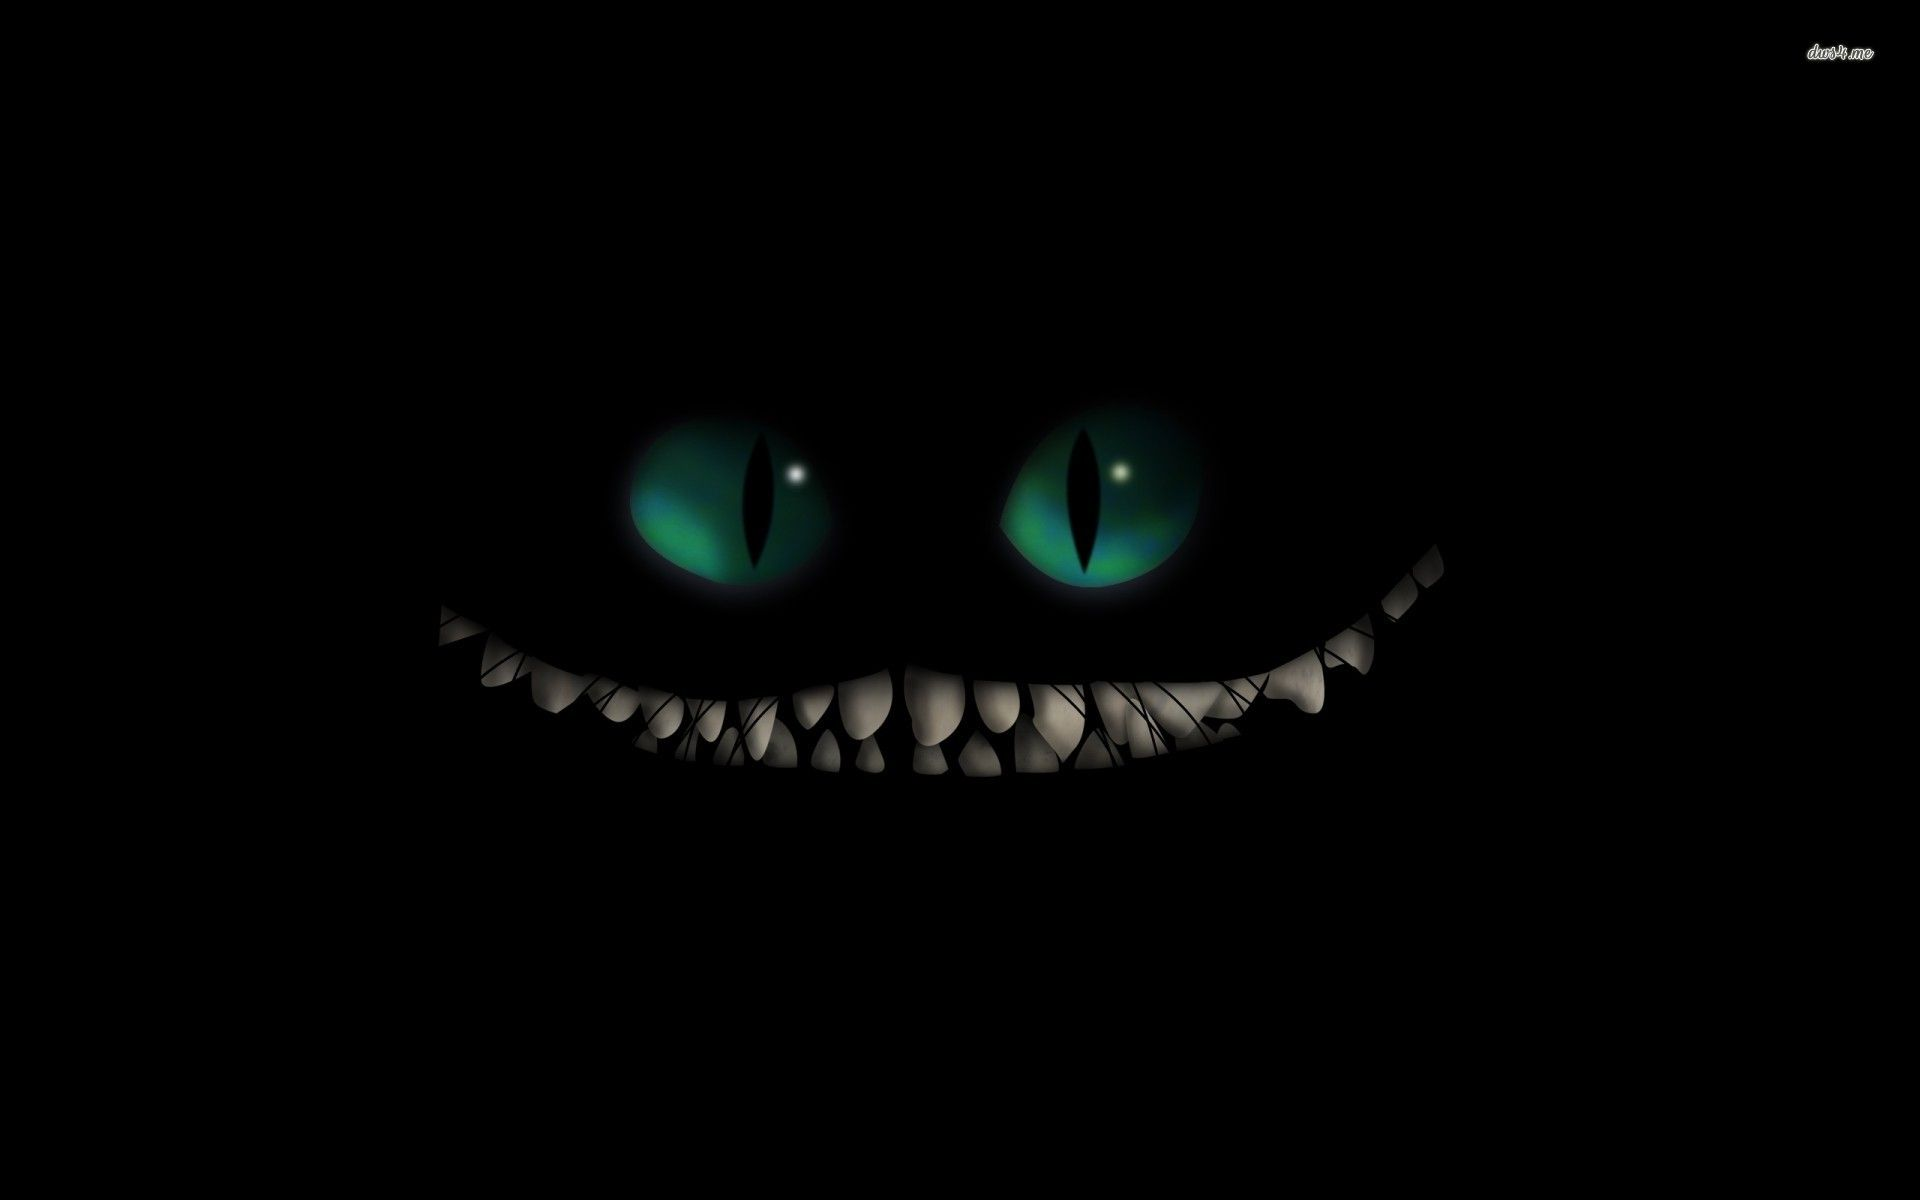 cheshire cat smile - Google Search | Wonderland | Pinterest